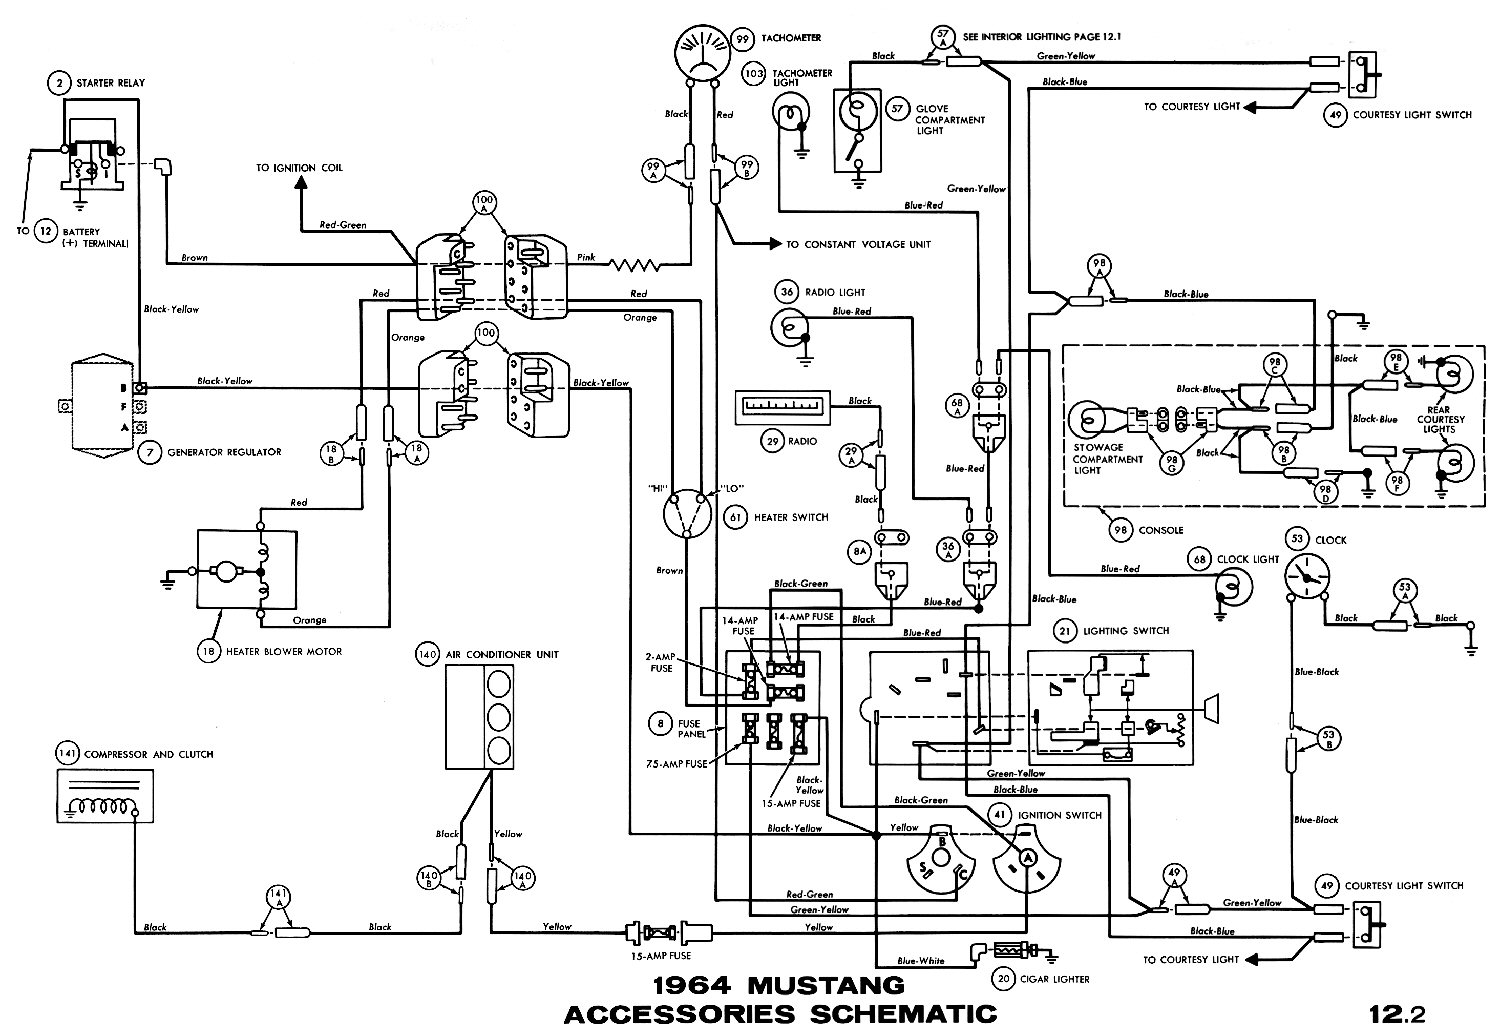 1964 Mustang Wiring Diagrams Average Joe Restoration Together With Relay Diagram On For Car Horn Accessories Pictorial Or Schematic Air Conditioner